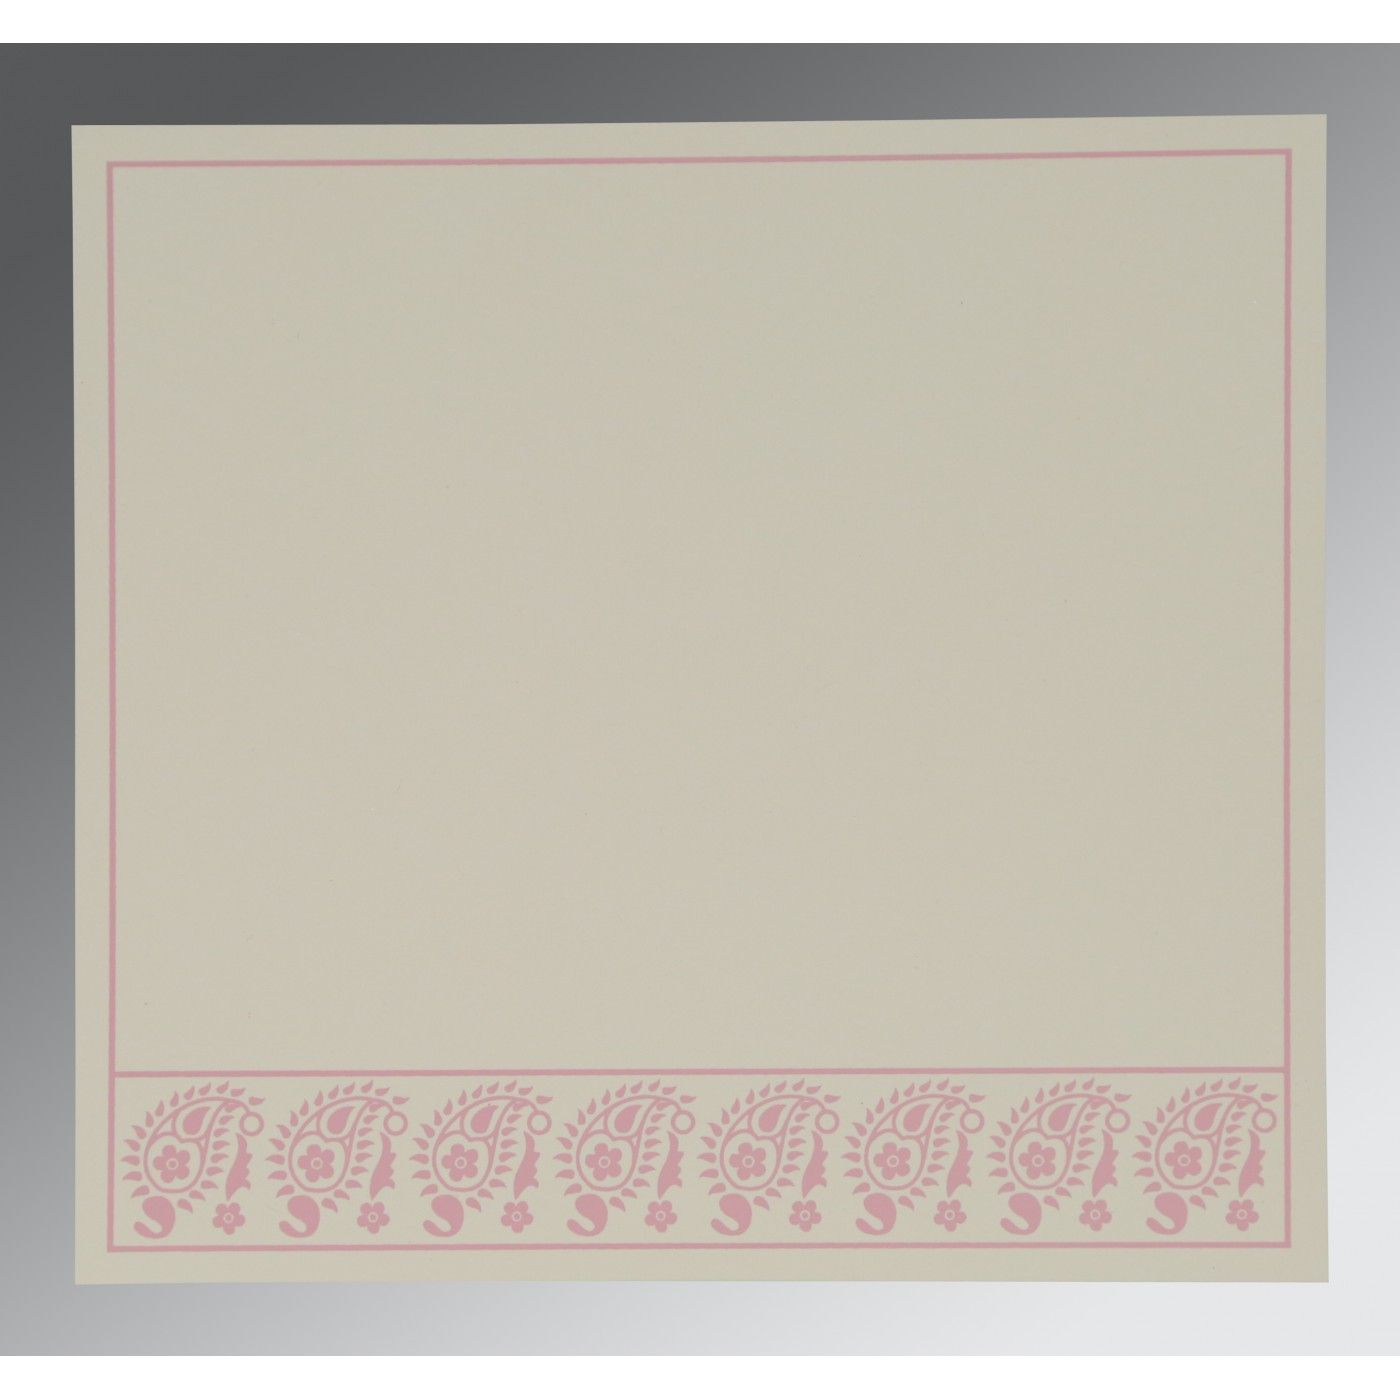 AZALEA PINK WOOLY FLORAL THEMED - SCREEN PRINTED WEDDING CARD : CW-8218J - IndianWeddingCards